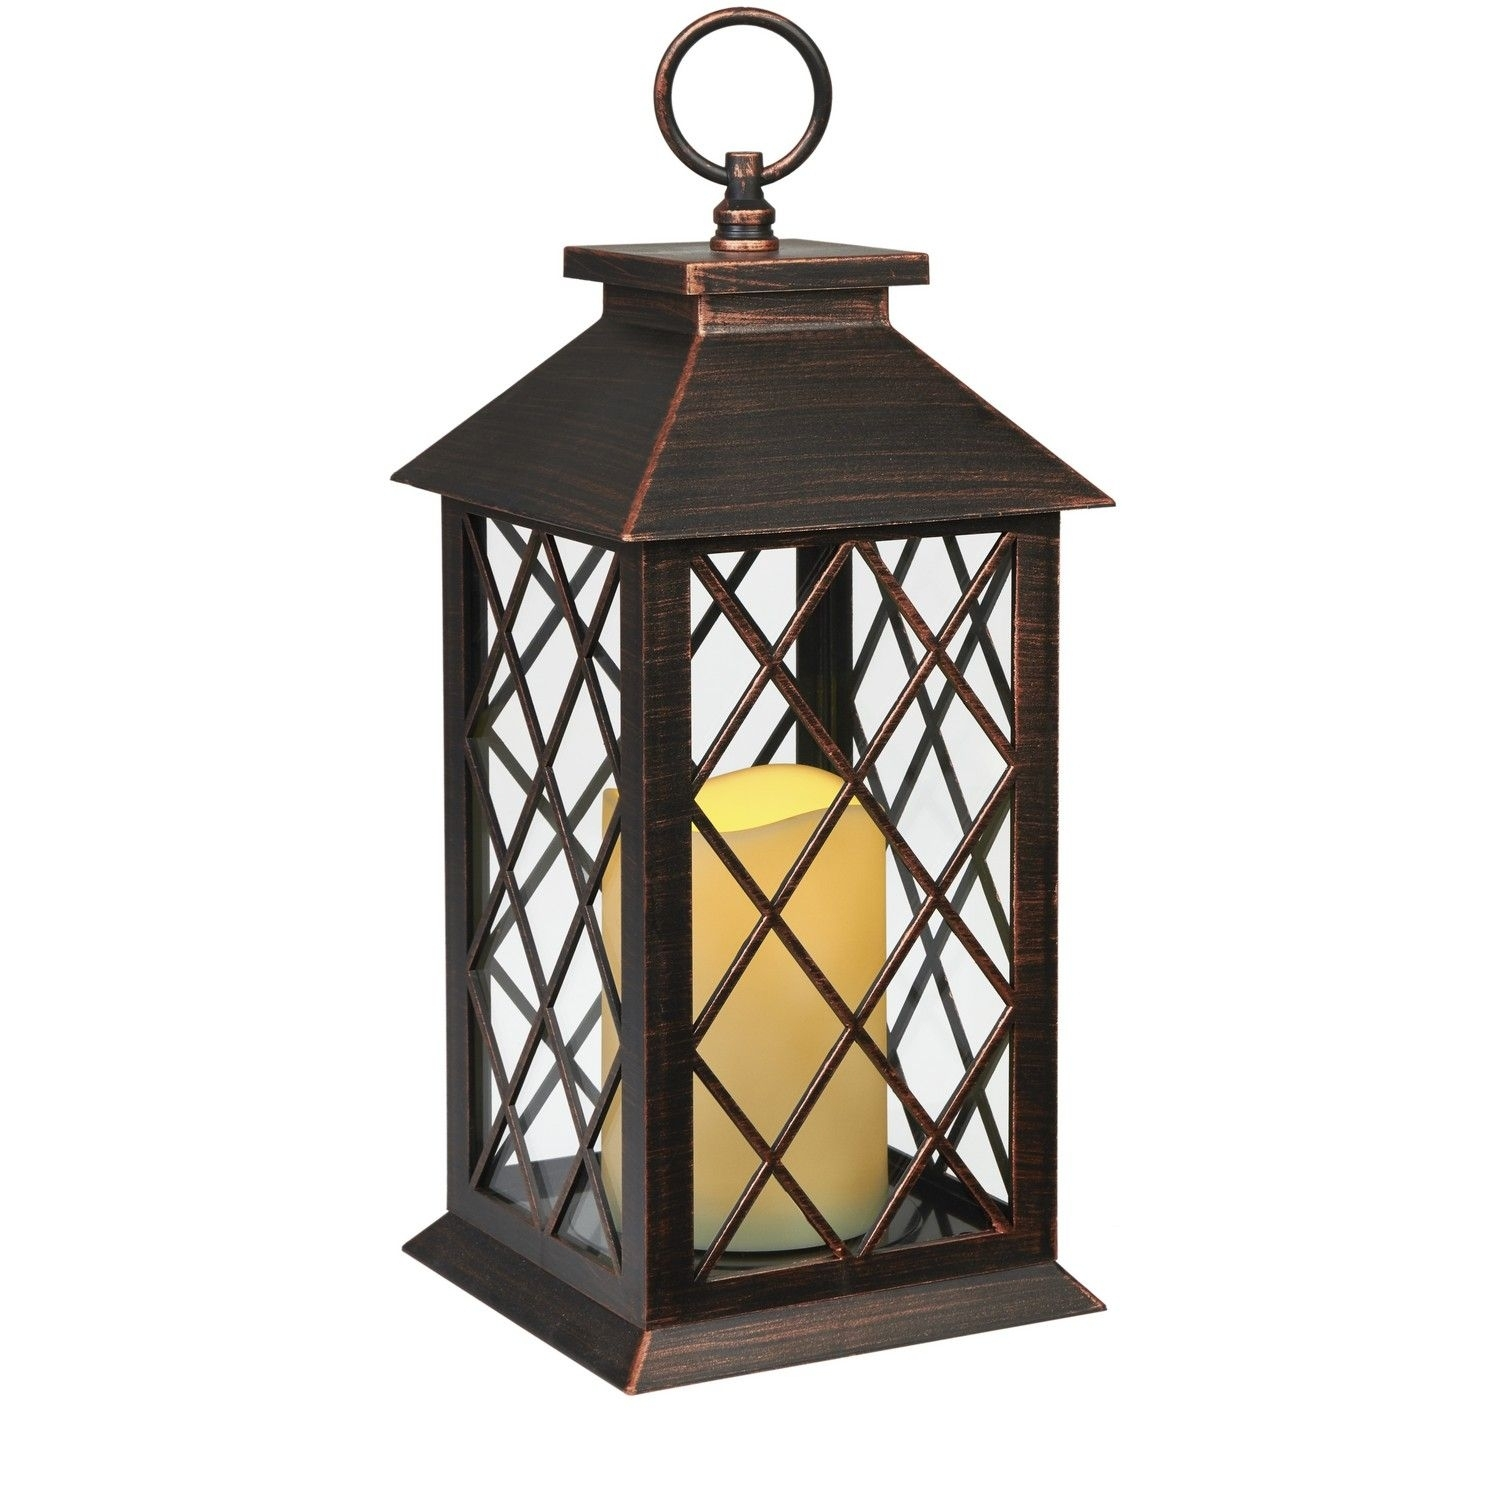 Bronze Plastic Candle Lanterns With Led Candle Installed: Size:14Cm within Outdoor Lanterns With Led Candles (Image 3 of 20)